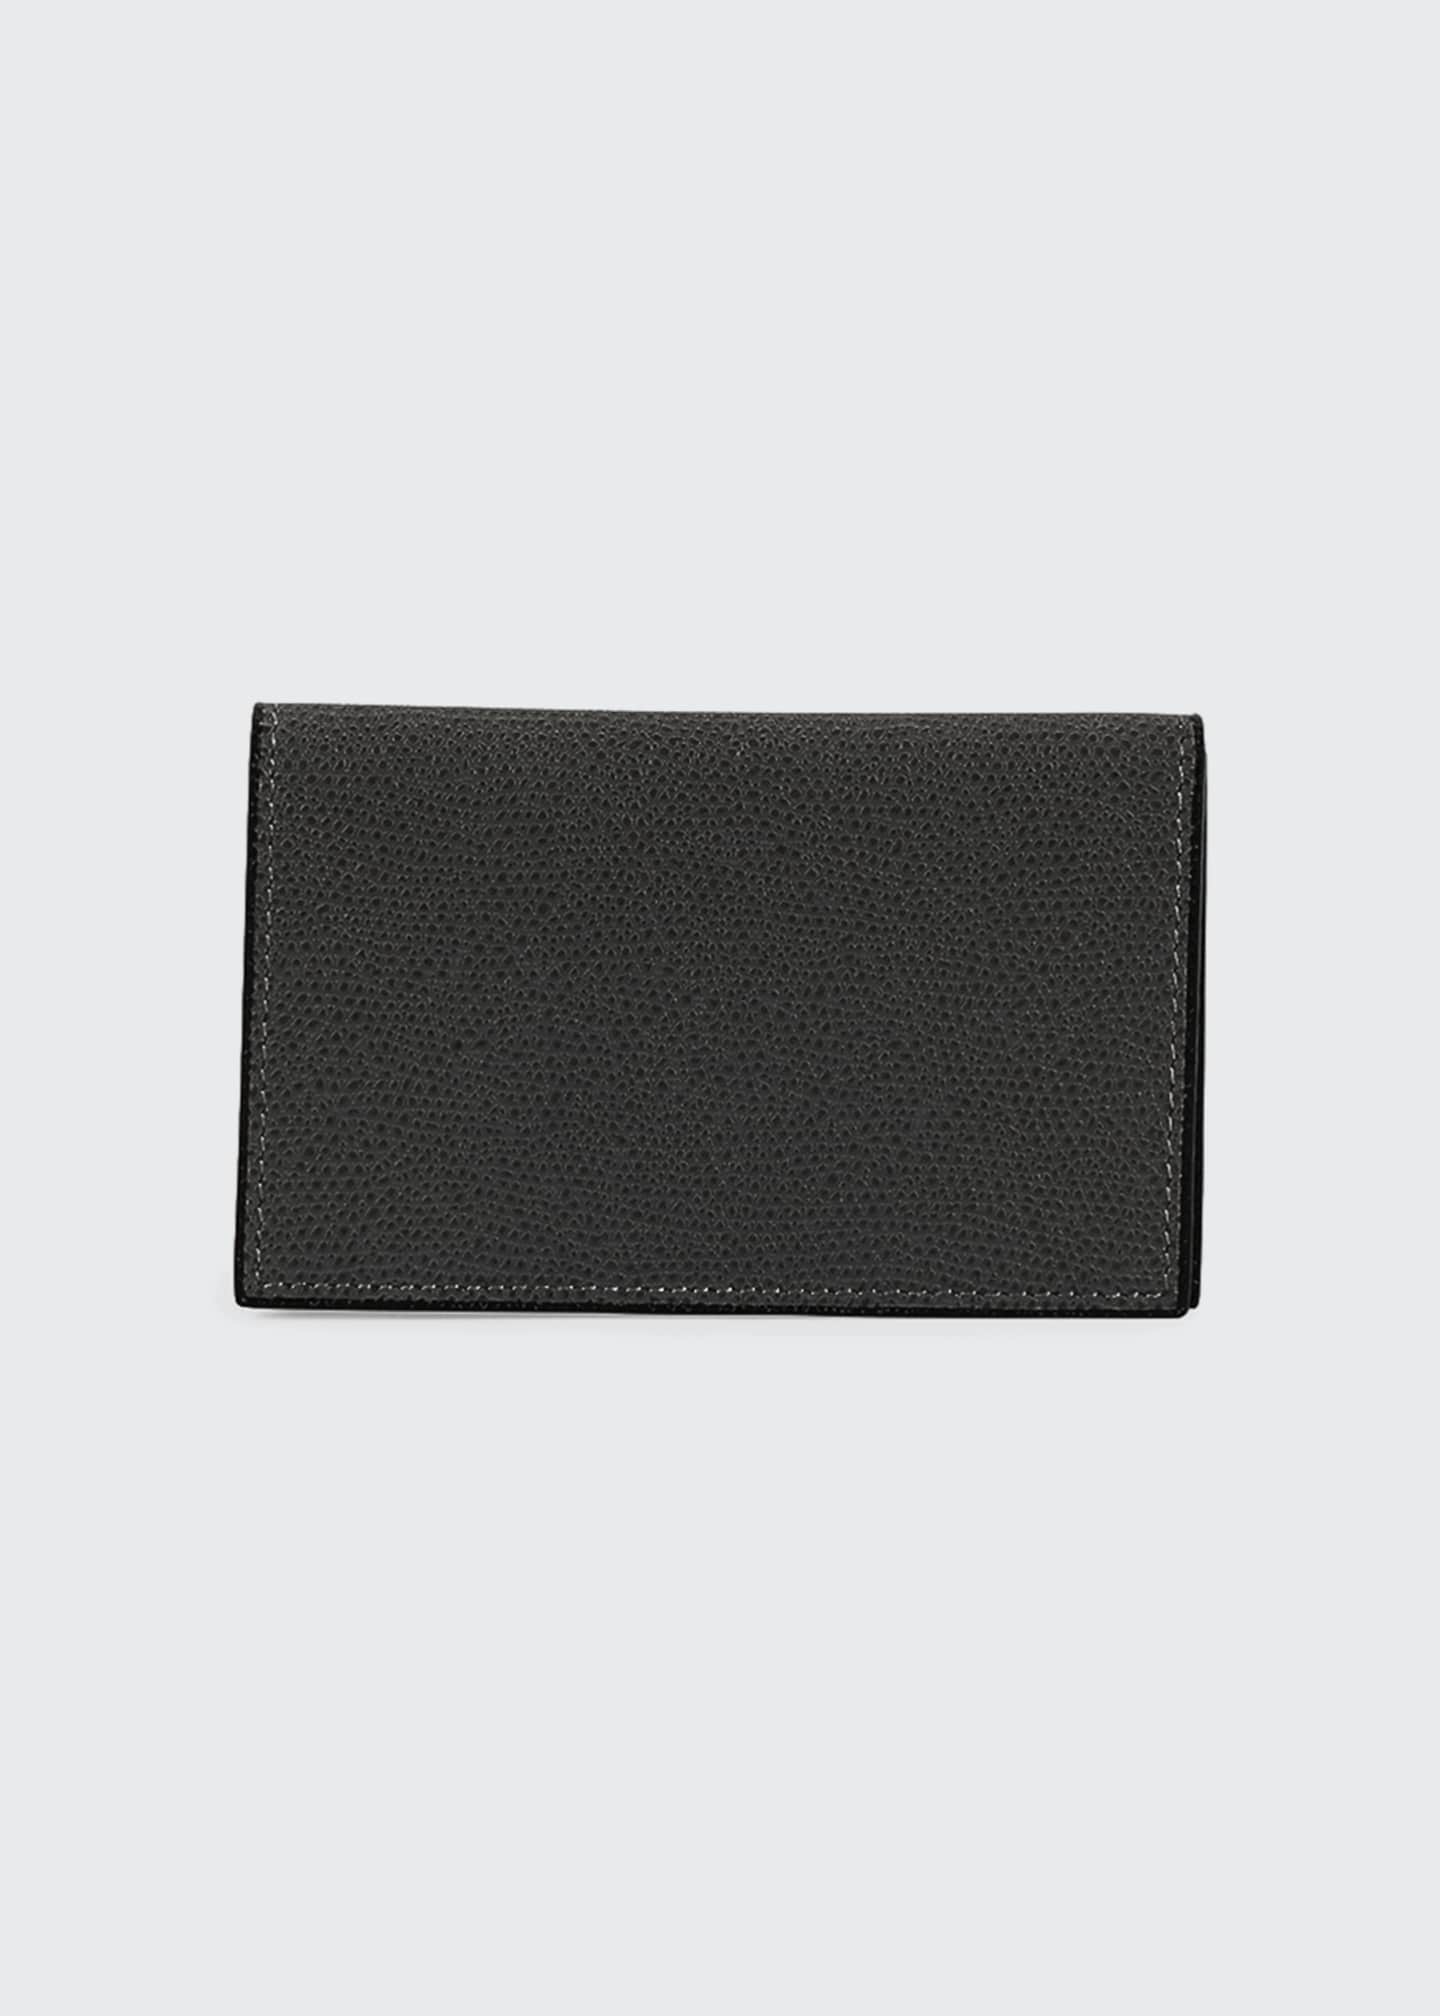 Valextra Saffiano Pebbled Business Card Case